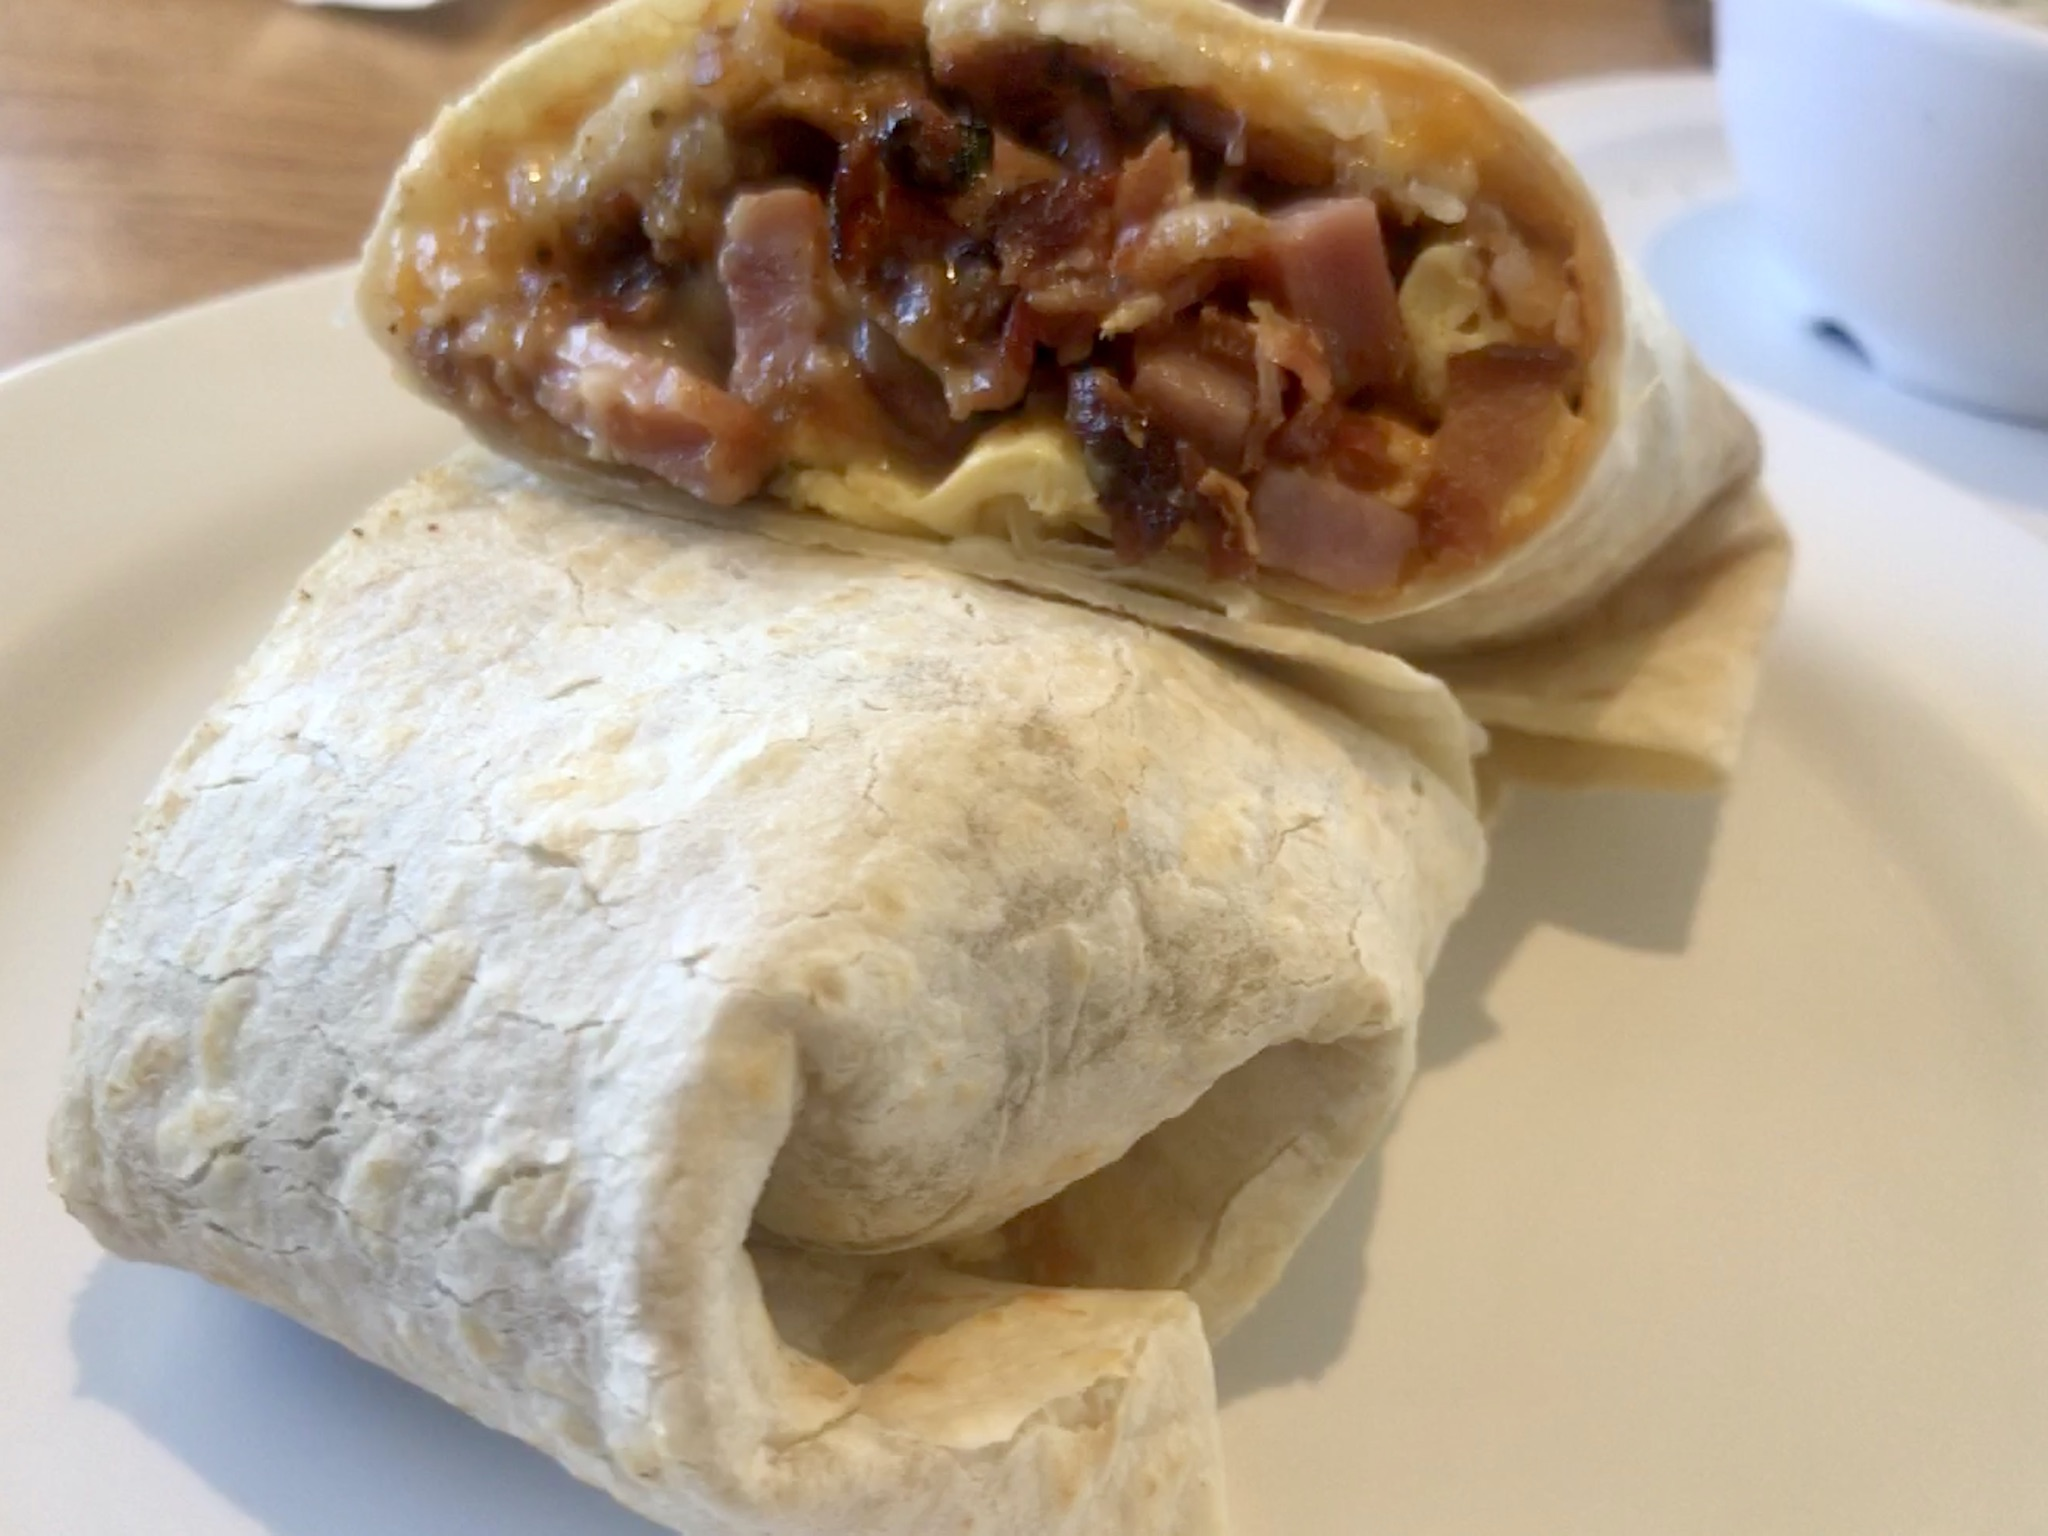 Breakfast Burritos at Just Joels in Kennewick – October 22 2020